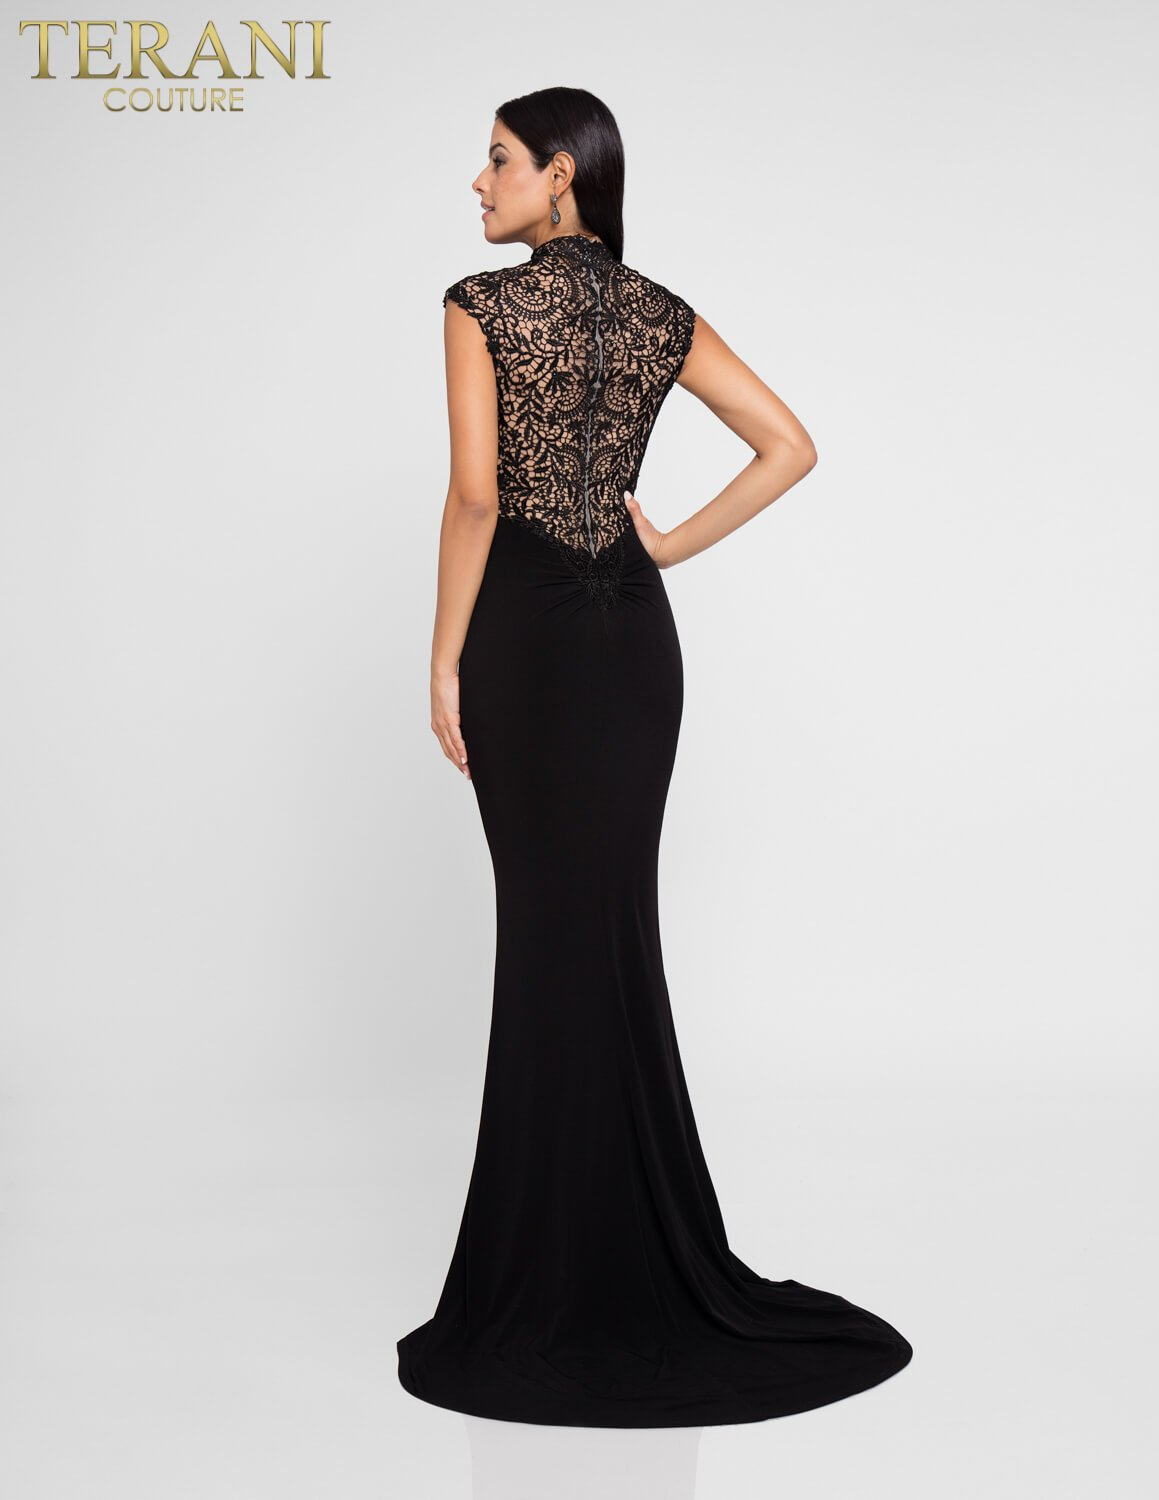 Black Formal Gown with Lace - 1813E6373